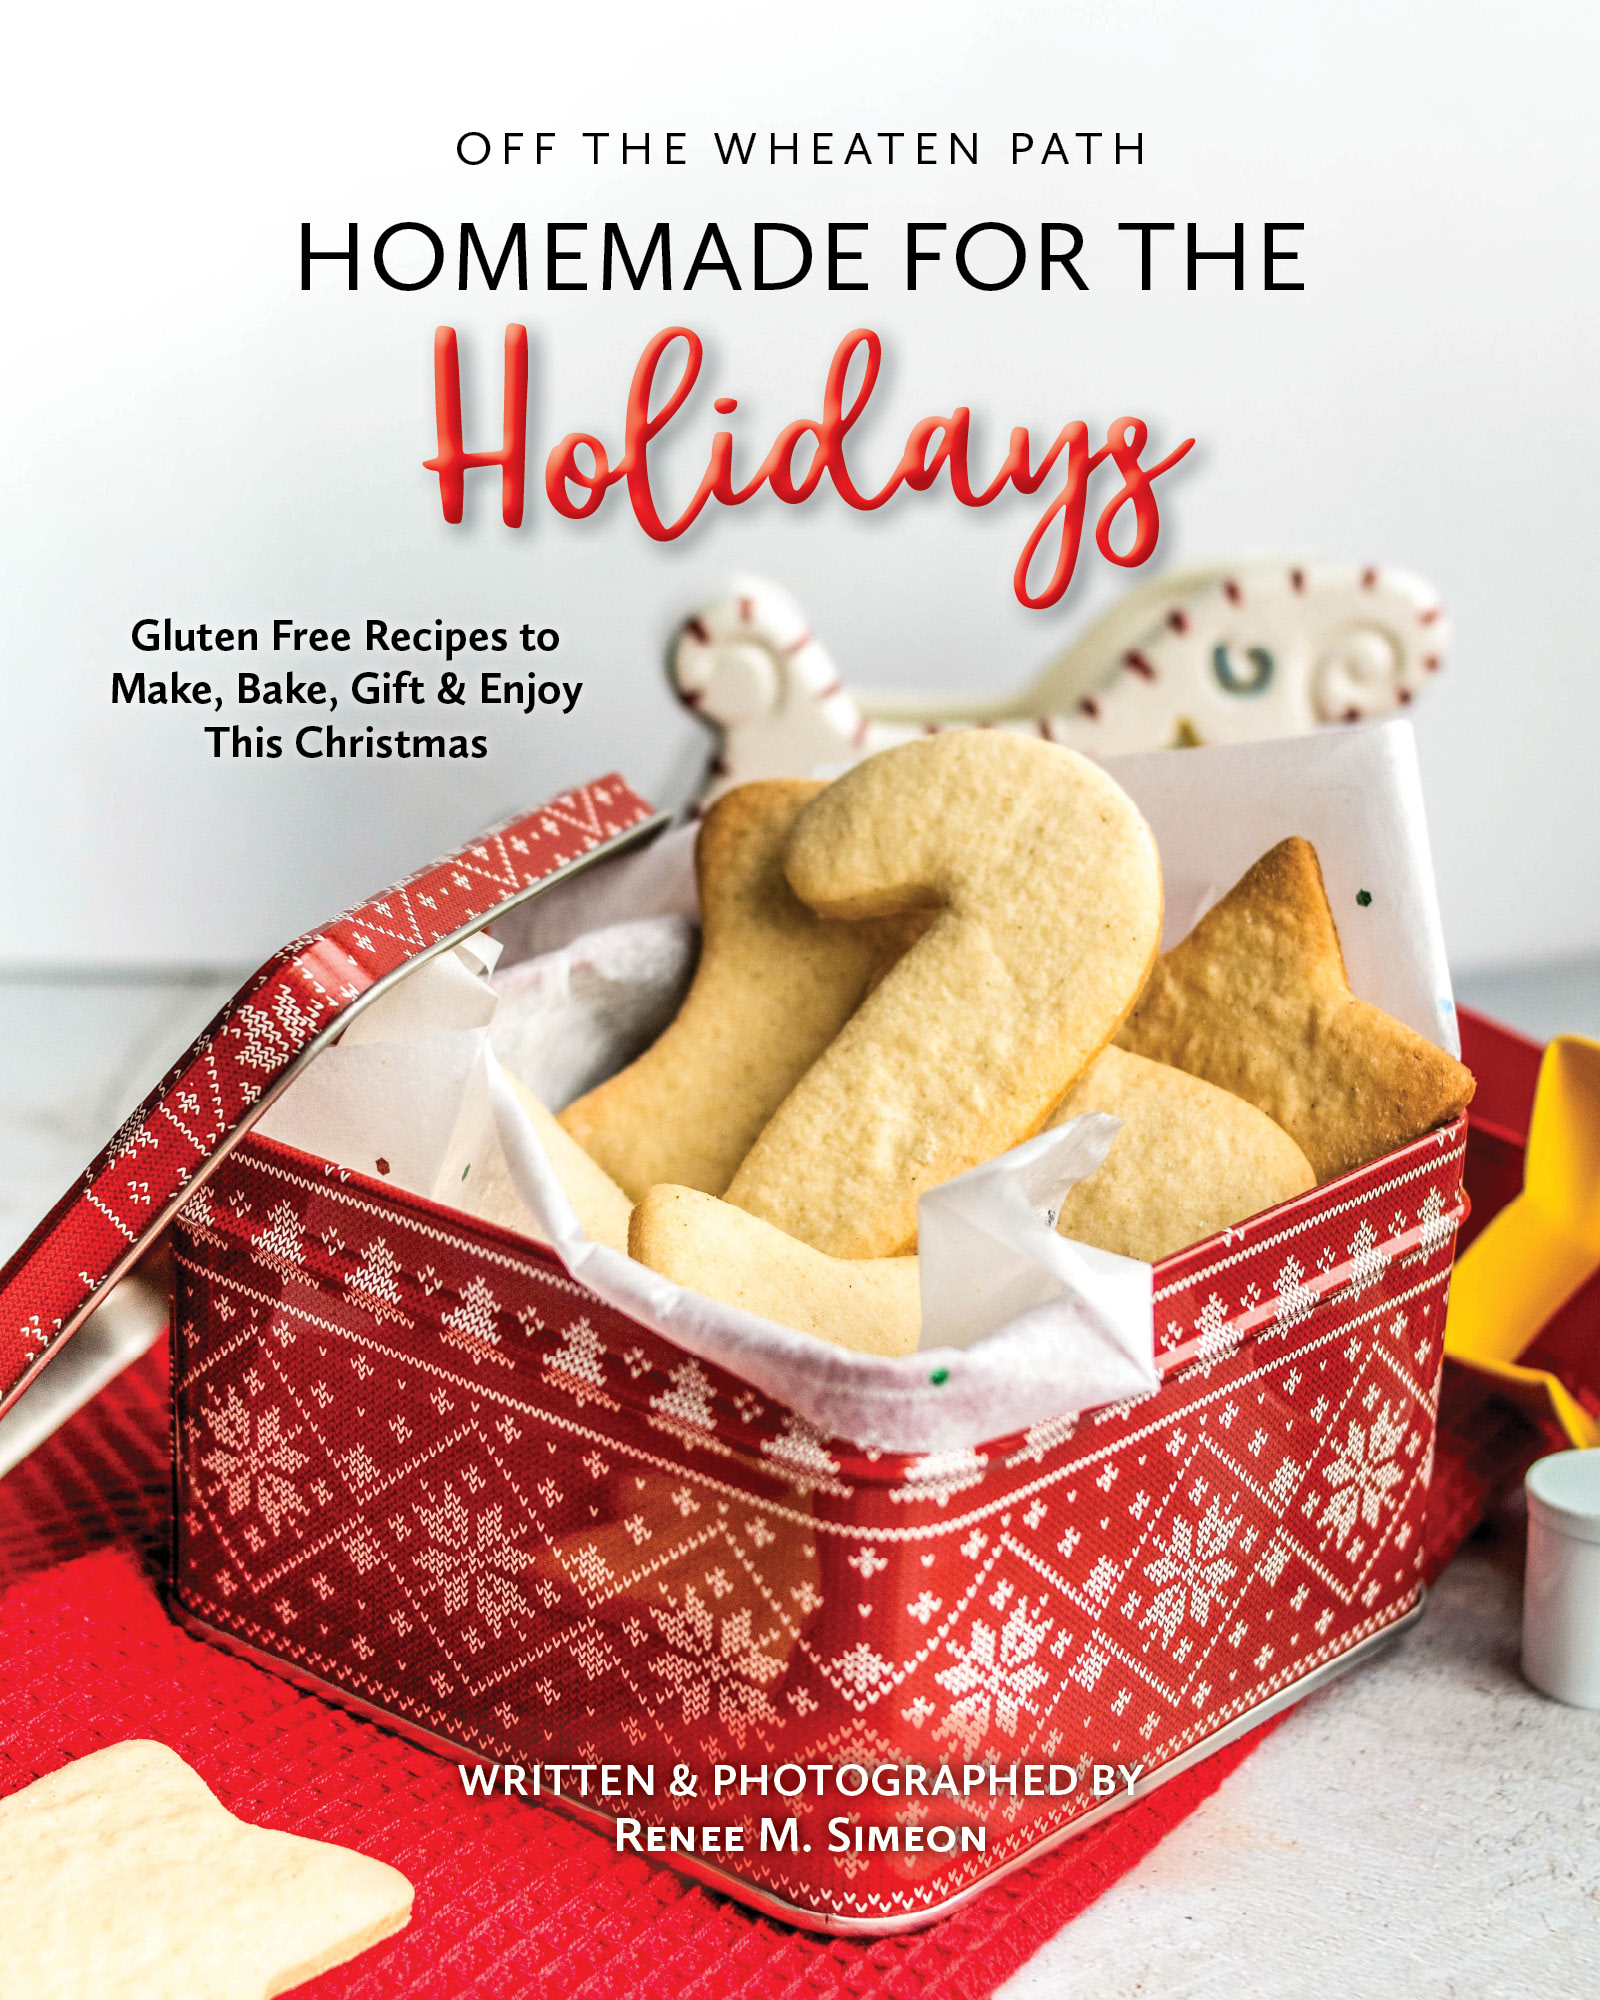 homemade-for-the-holidays-cookbook